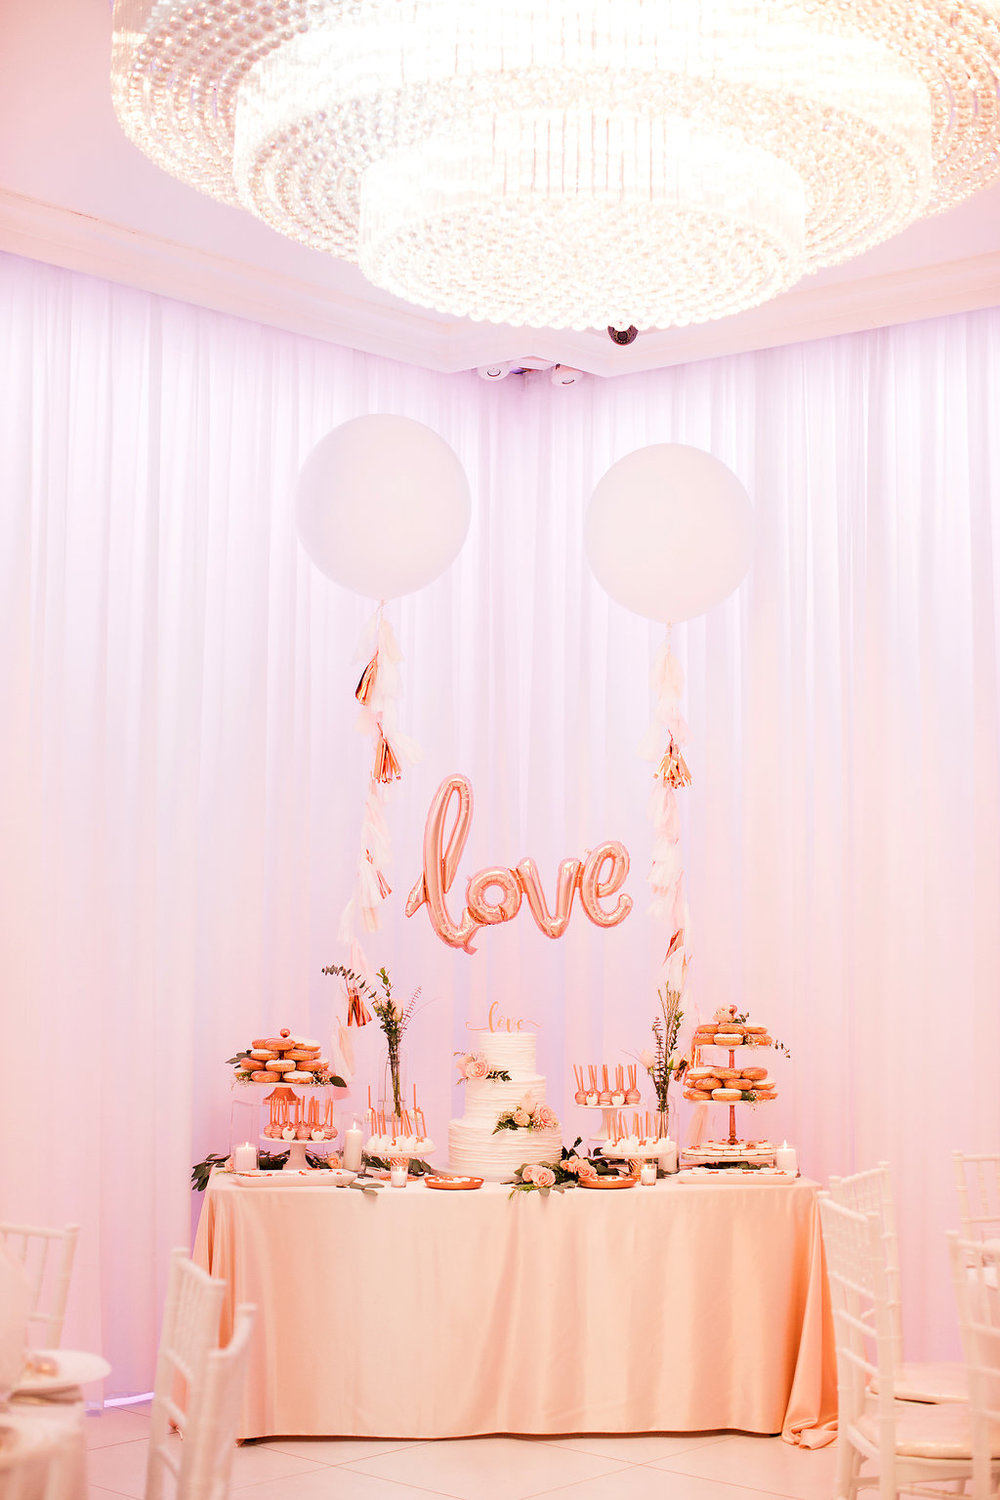 Rose Gold Dessert Table-Rose Gold wedding-rose quartz-Wedding Desserts-Engagement party-Copper Desserts-Decorated wedding donuts-Love Balloon-Engagement Dessert Table-www.SugarPartiesLA.com